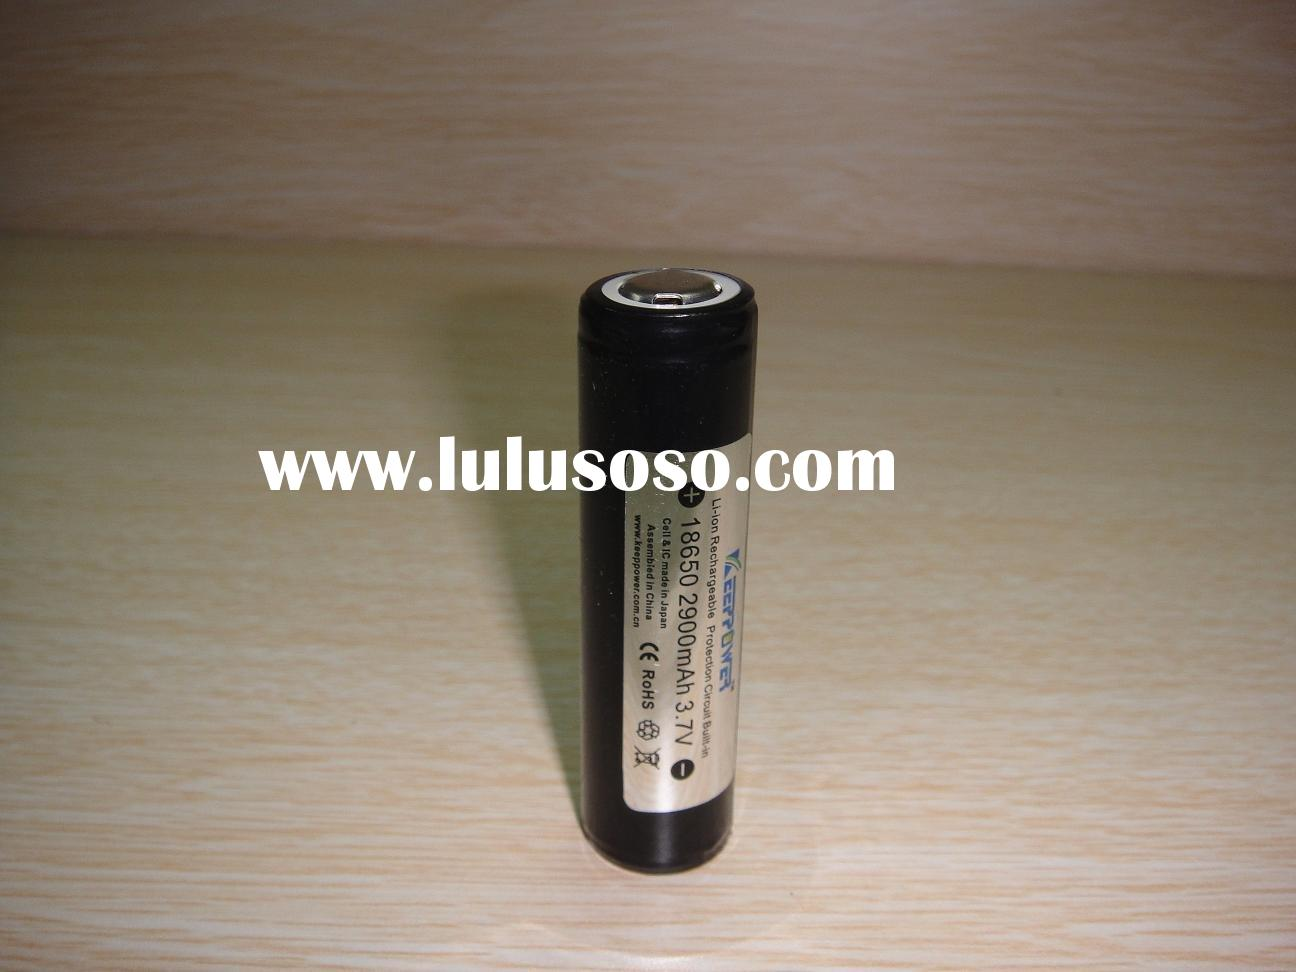 Li ion rechargeable battey 18650 3.7V 2900mAh IC biuilt in